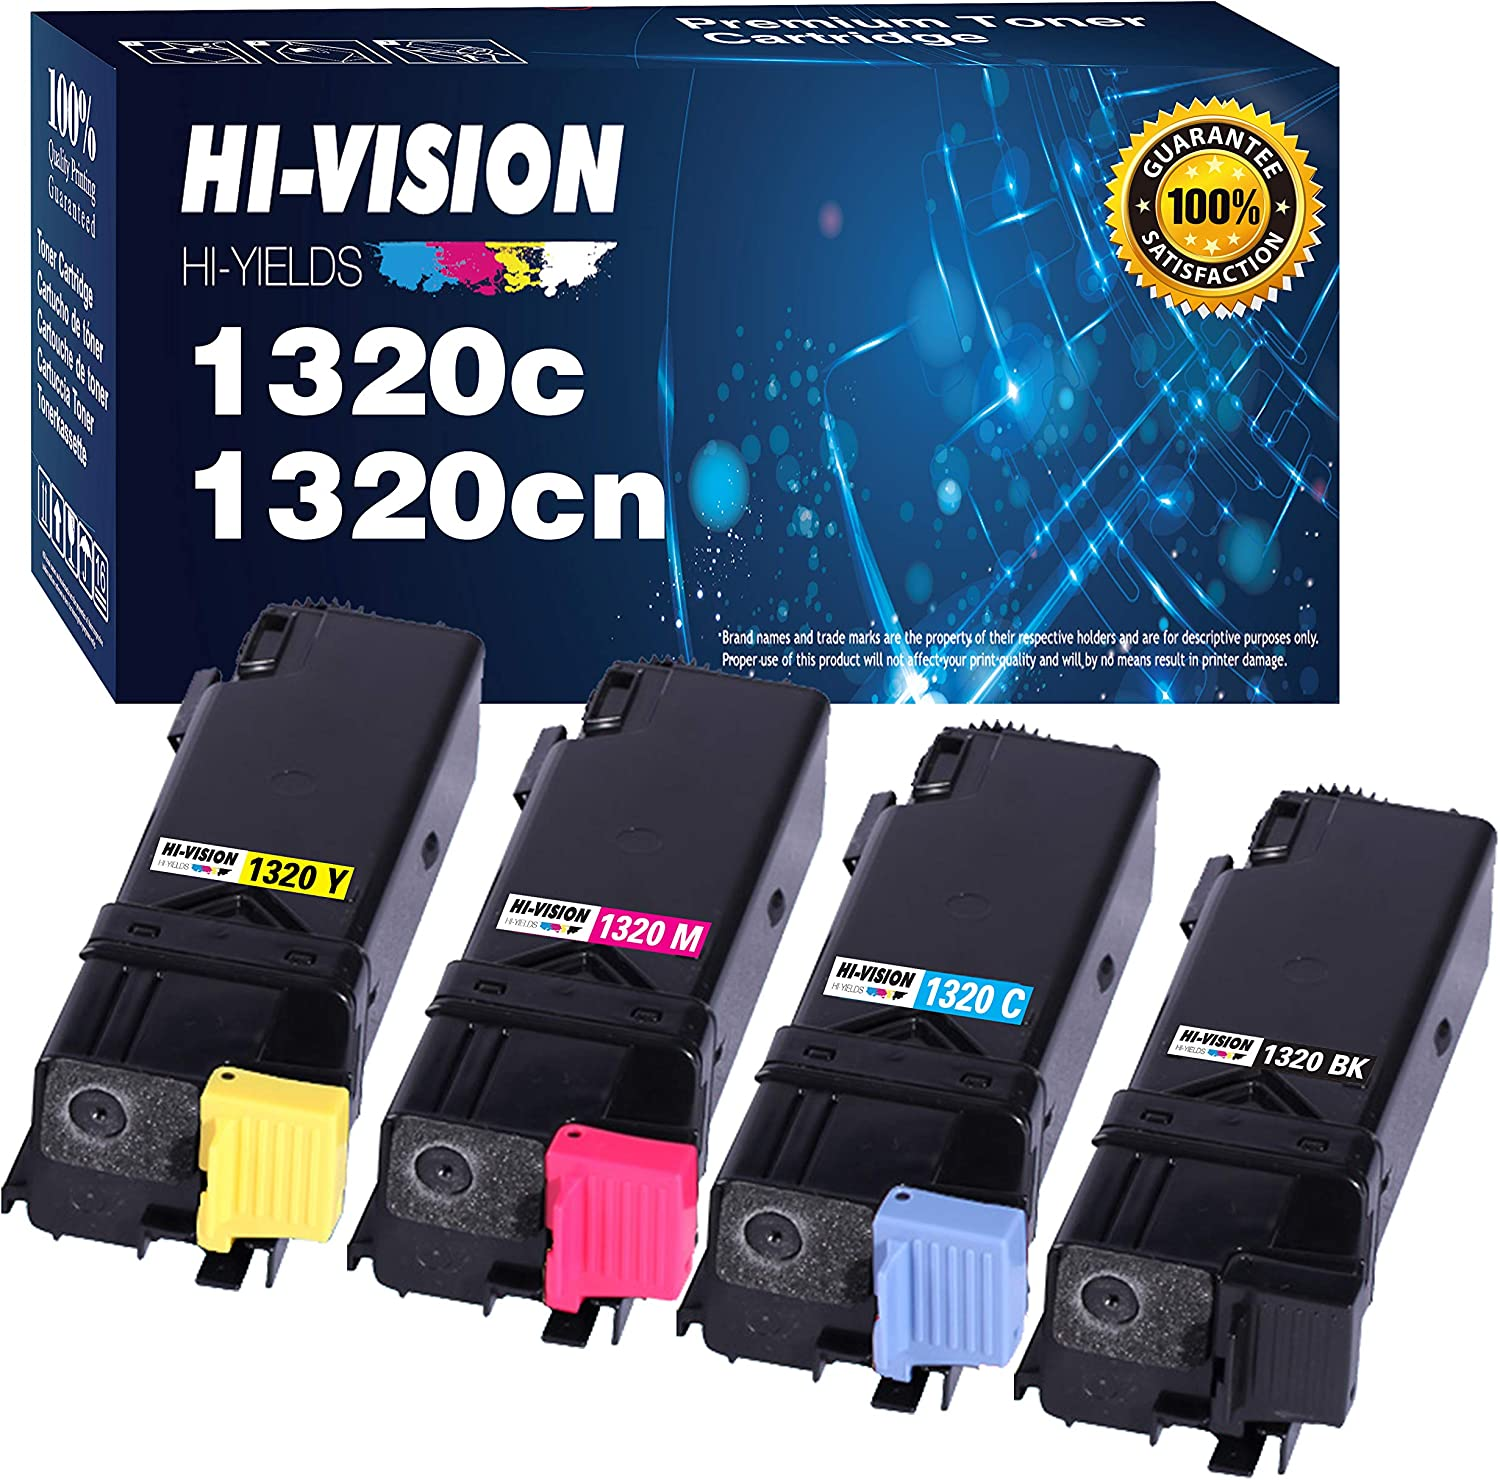 HI-Vision Compatible Dell 1320 Toner Cartridge Replacement for Dell Color Laser 1320c Printer (Black, Cyan, Magenta, Yellow, 4-Pack)